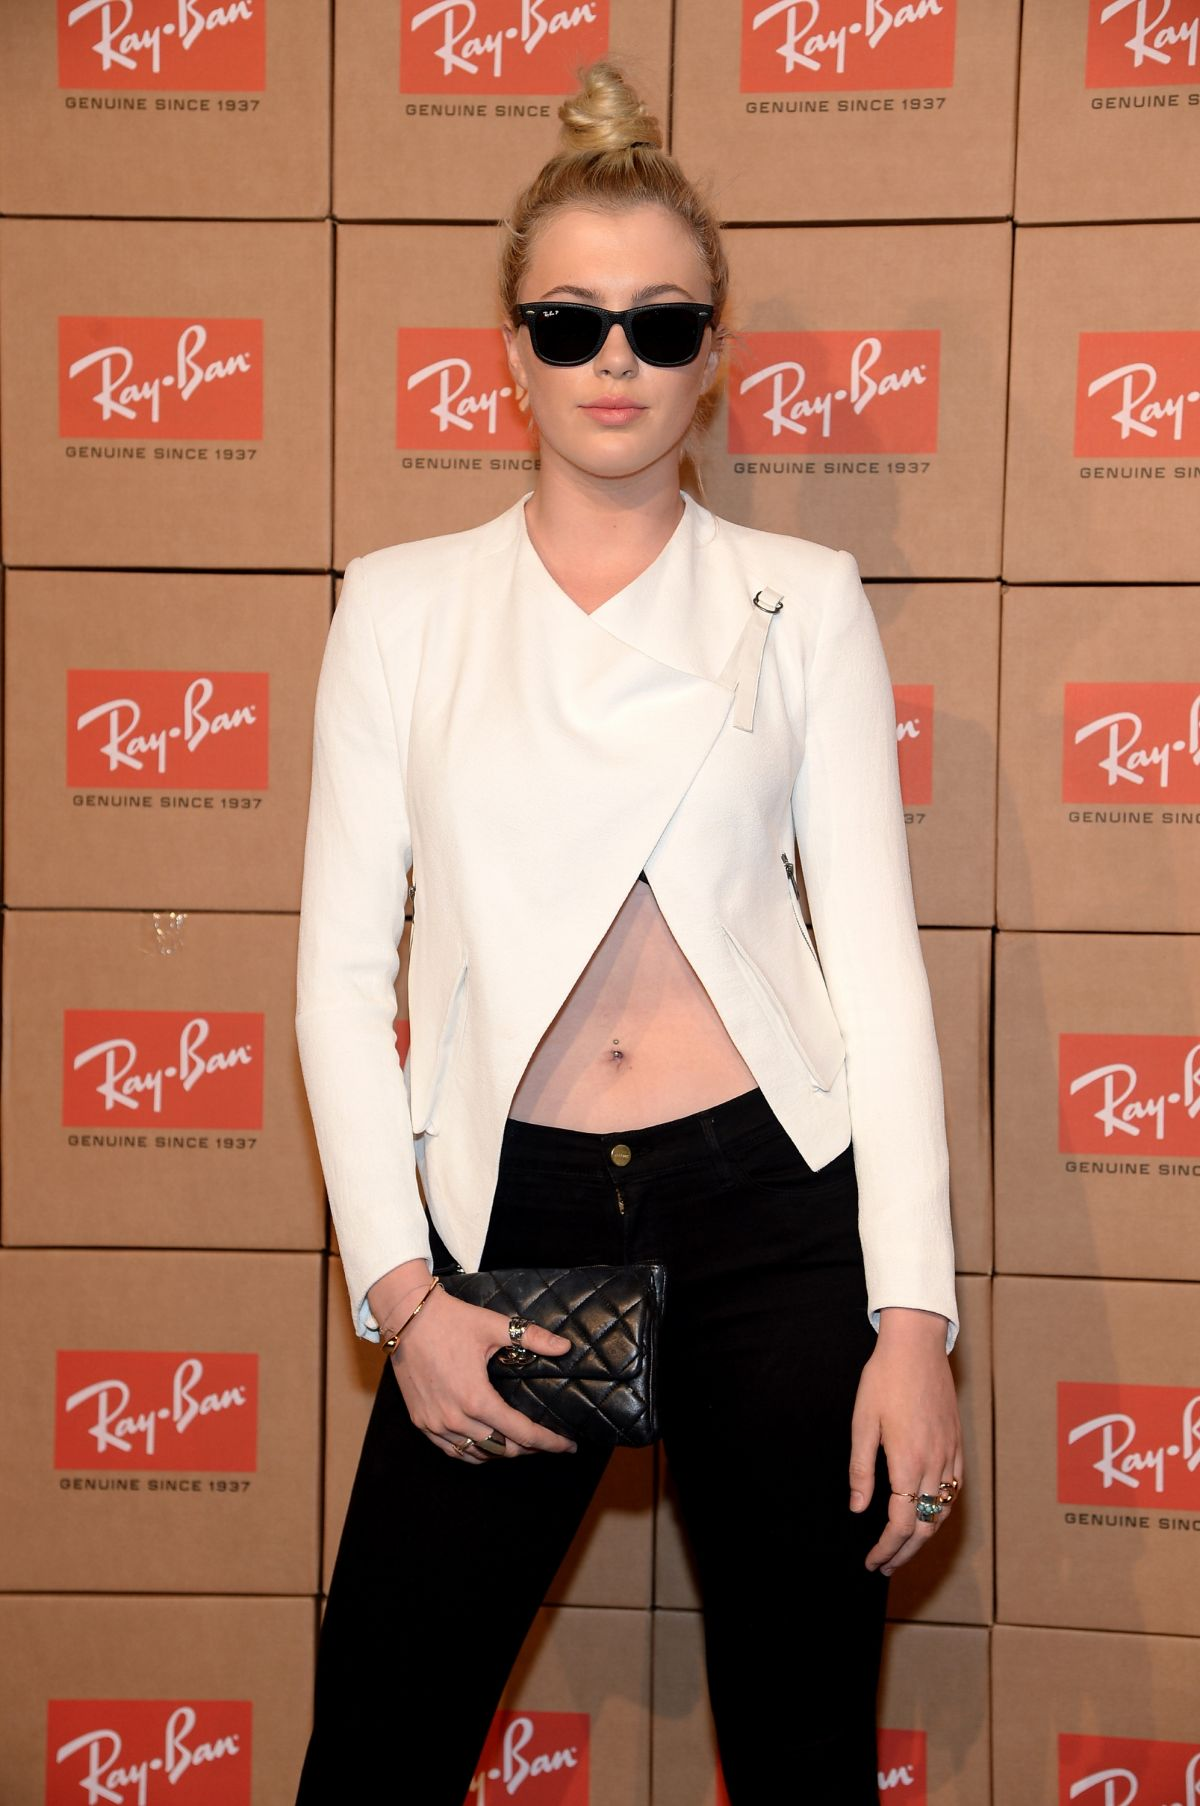 56a916d3be8 Ray Ban Ireland Baldwin Photos « Heritage Malta